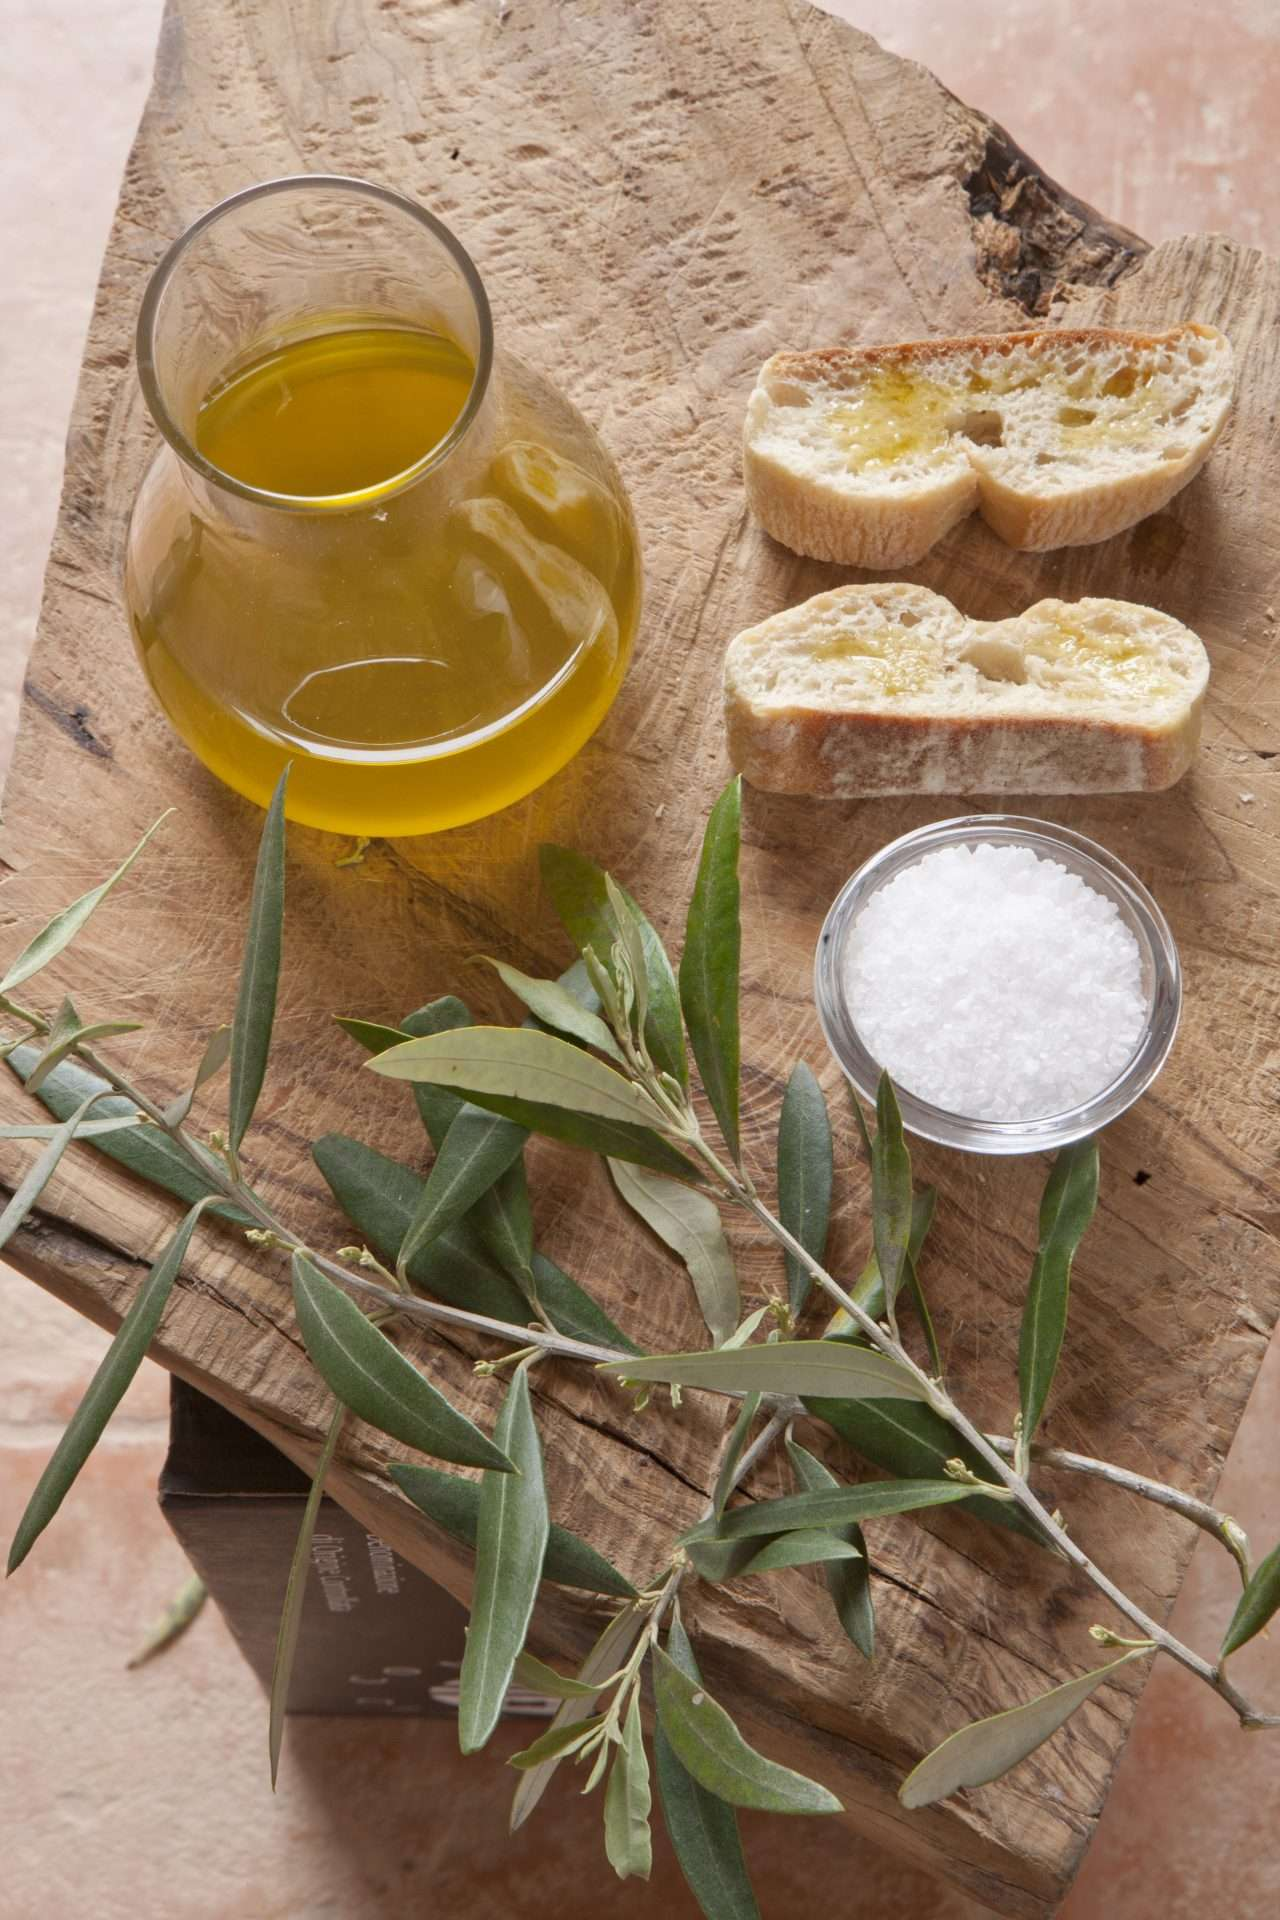 Olive Oil Experiences from our Organic Olives